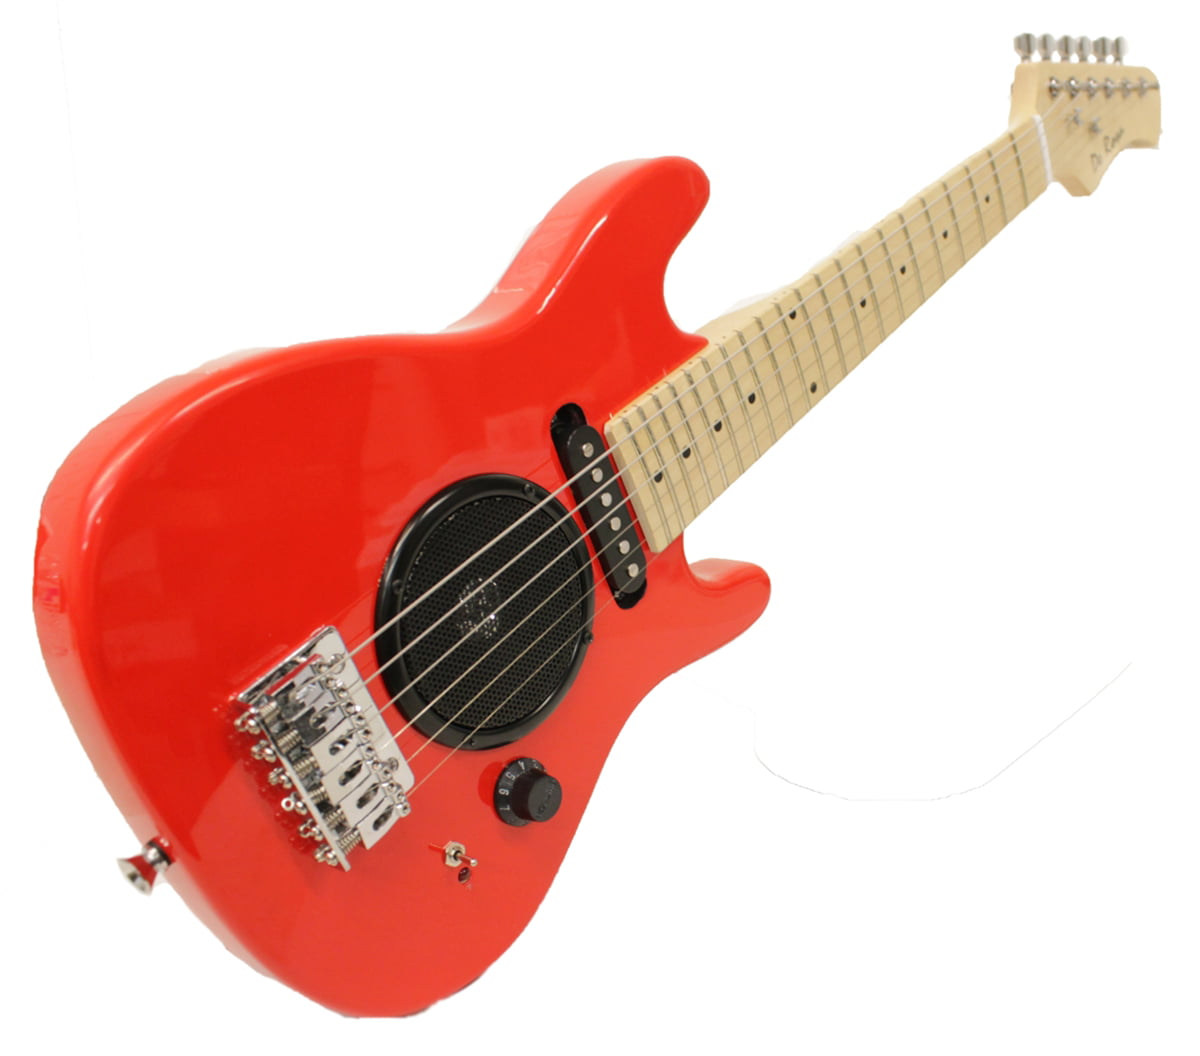 "Child	s Toy 9"" Electric Guitar w/ Built-in Amp - Includes Case & Acc. Kit  - Red"